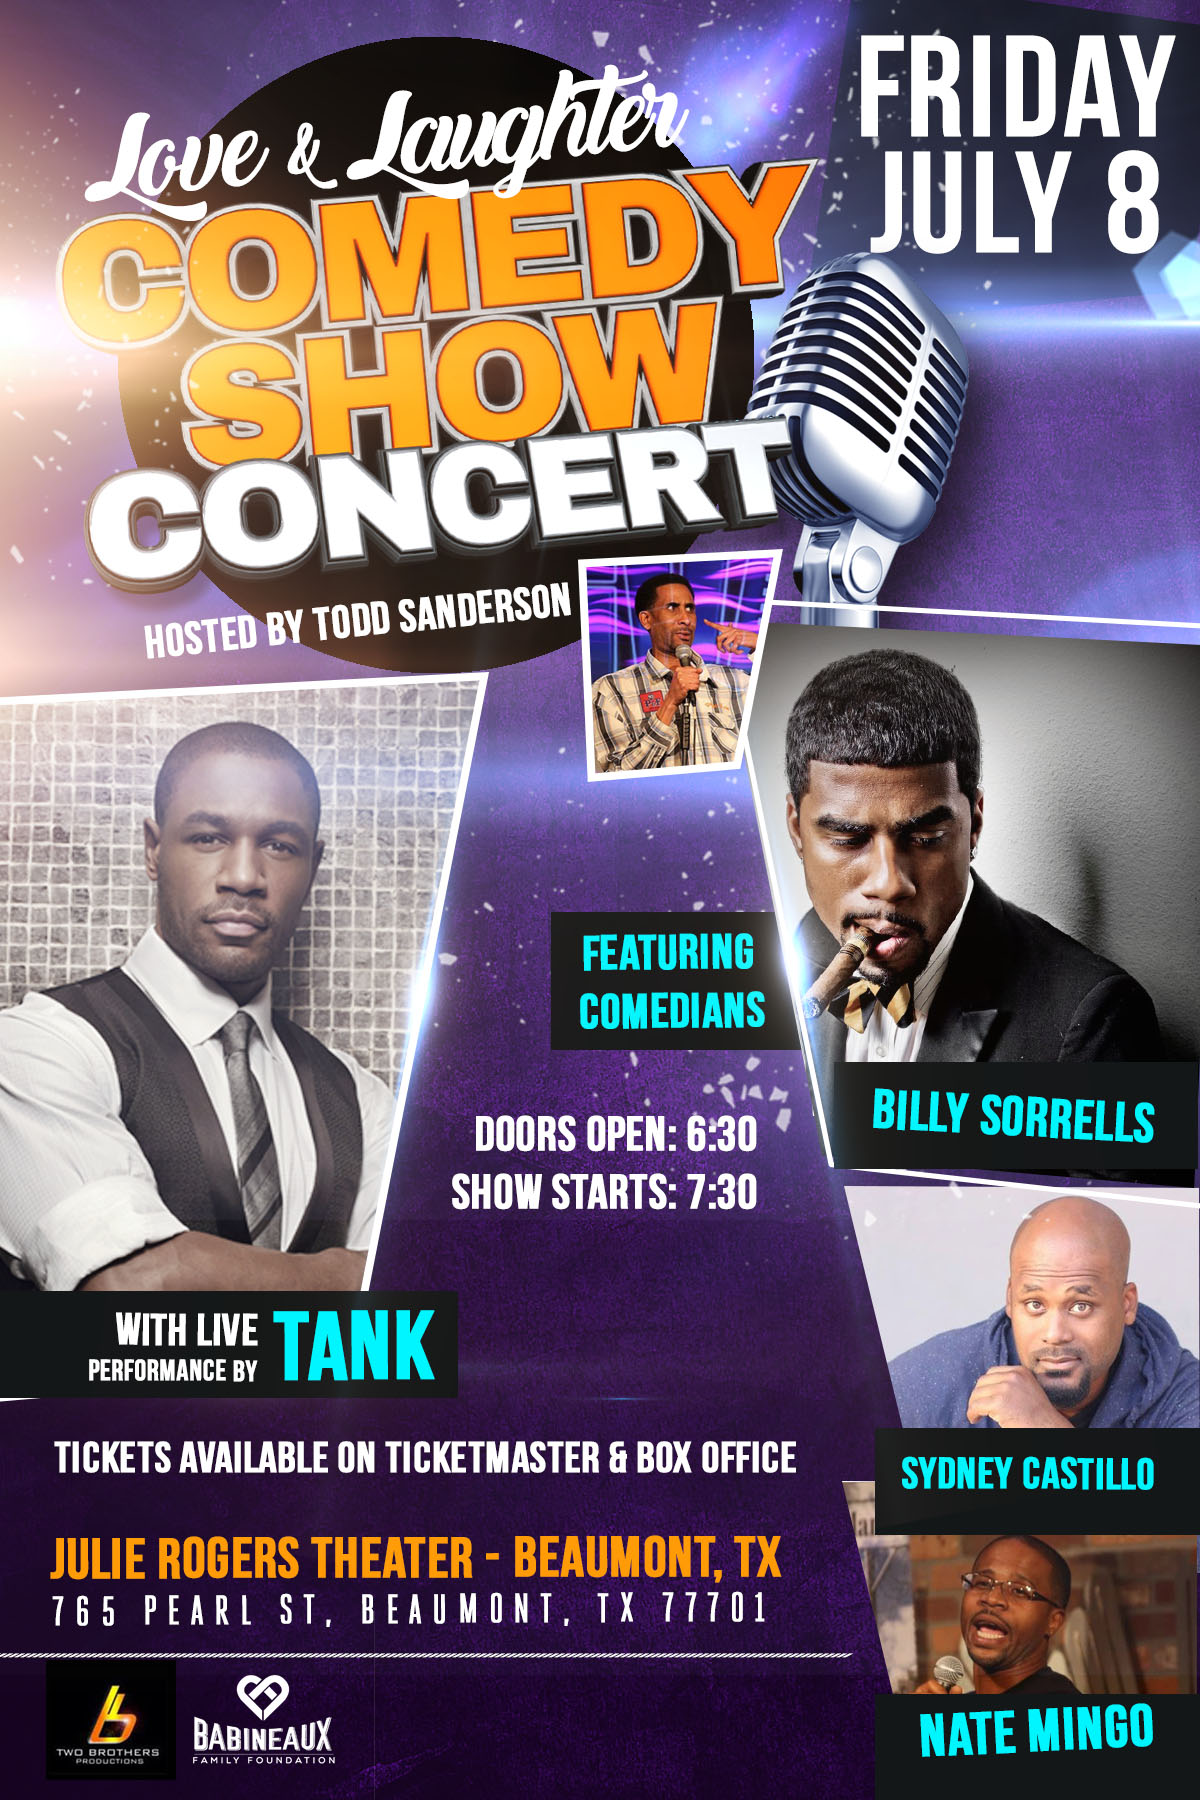 Love & Laughter Comedy Show Concert